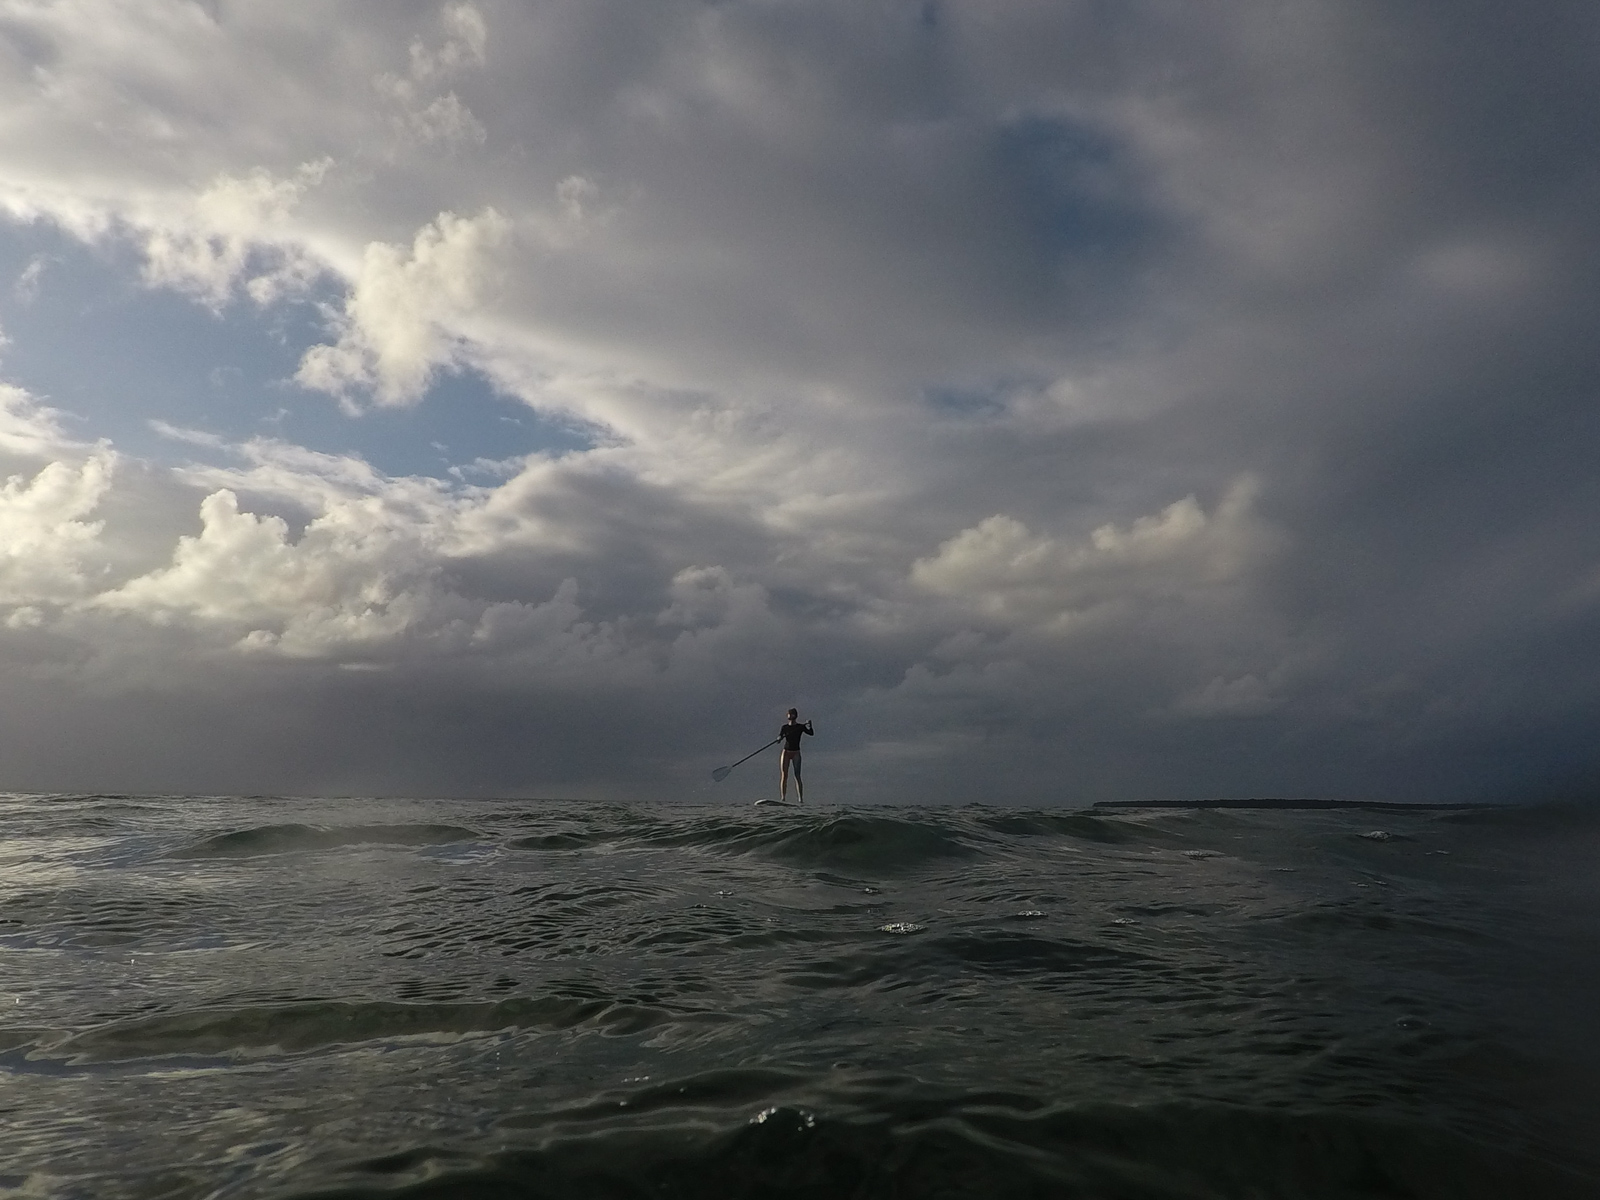 Stephanie took out the SUP and caught some amazing late afternoon light against distant stormy skies.